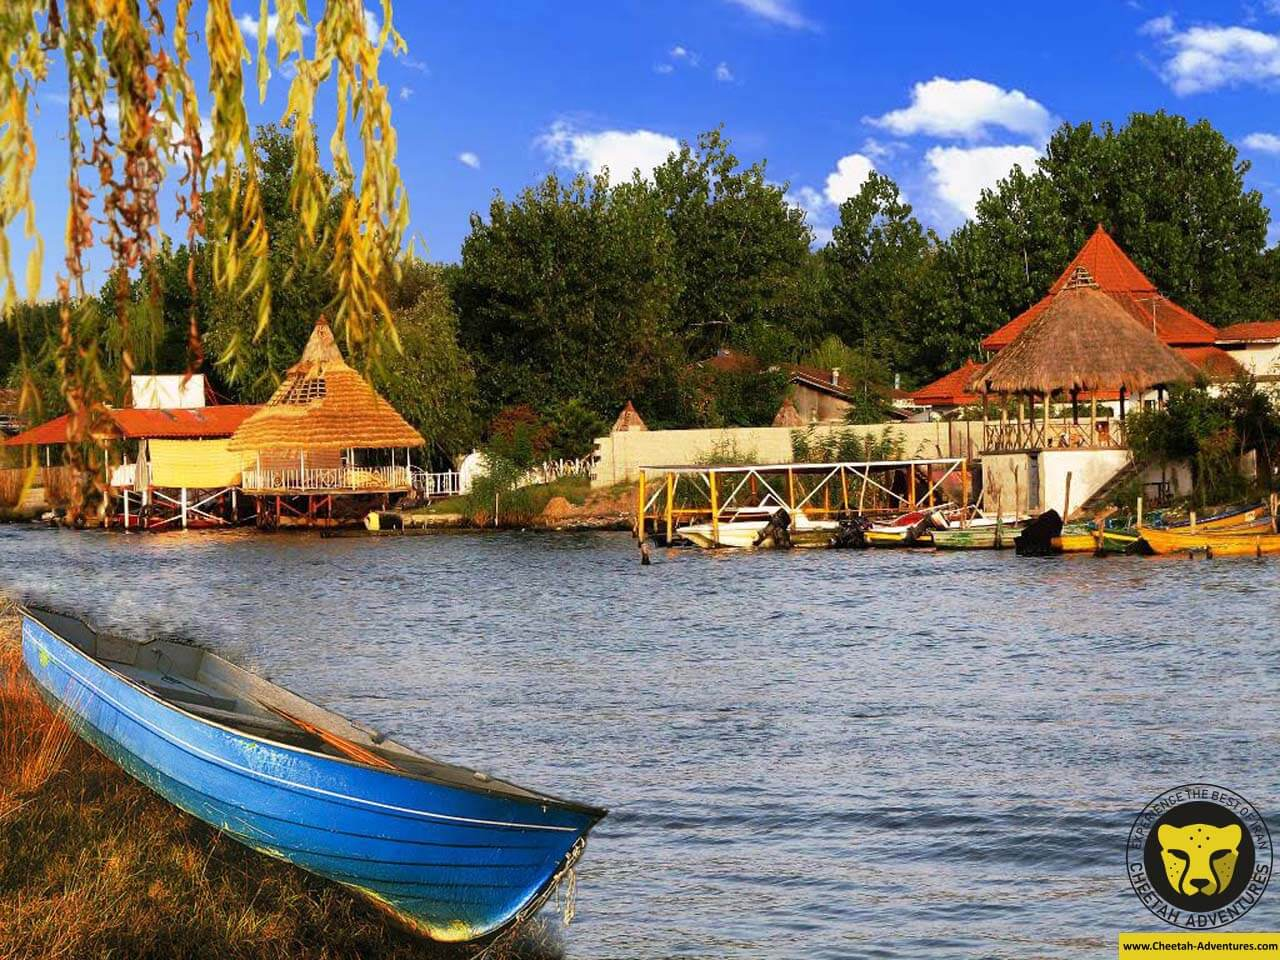 Anzali Lagoon rasht iran tour package travel cheetah adventures